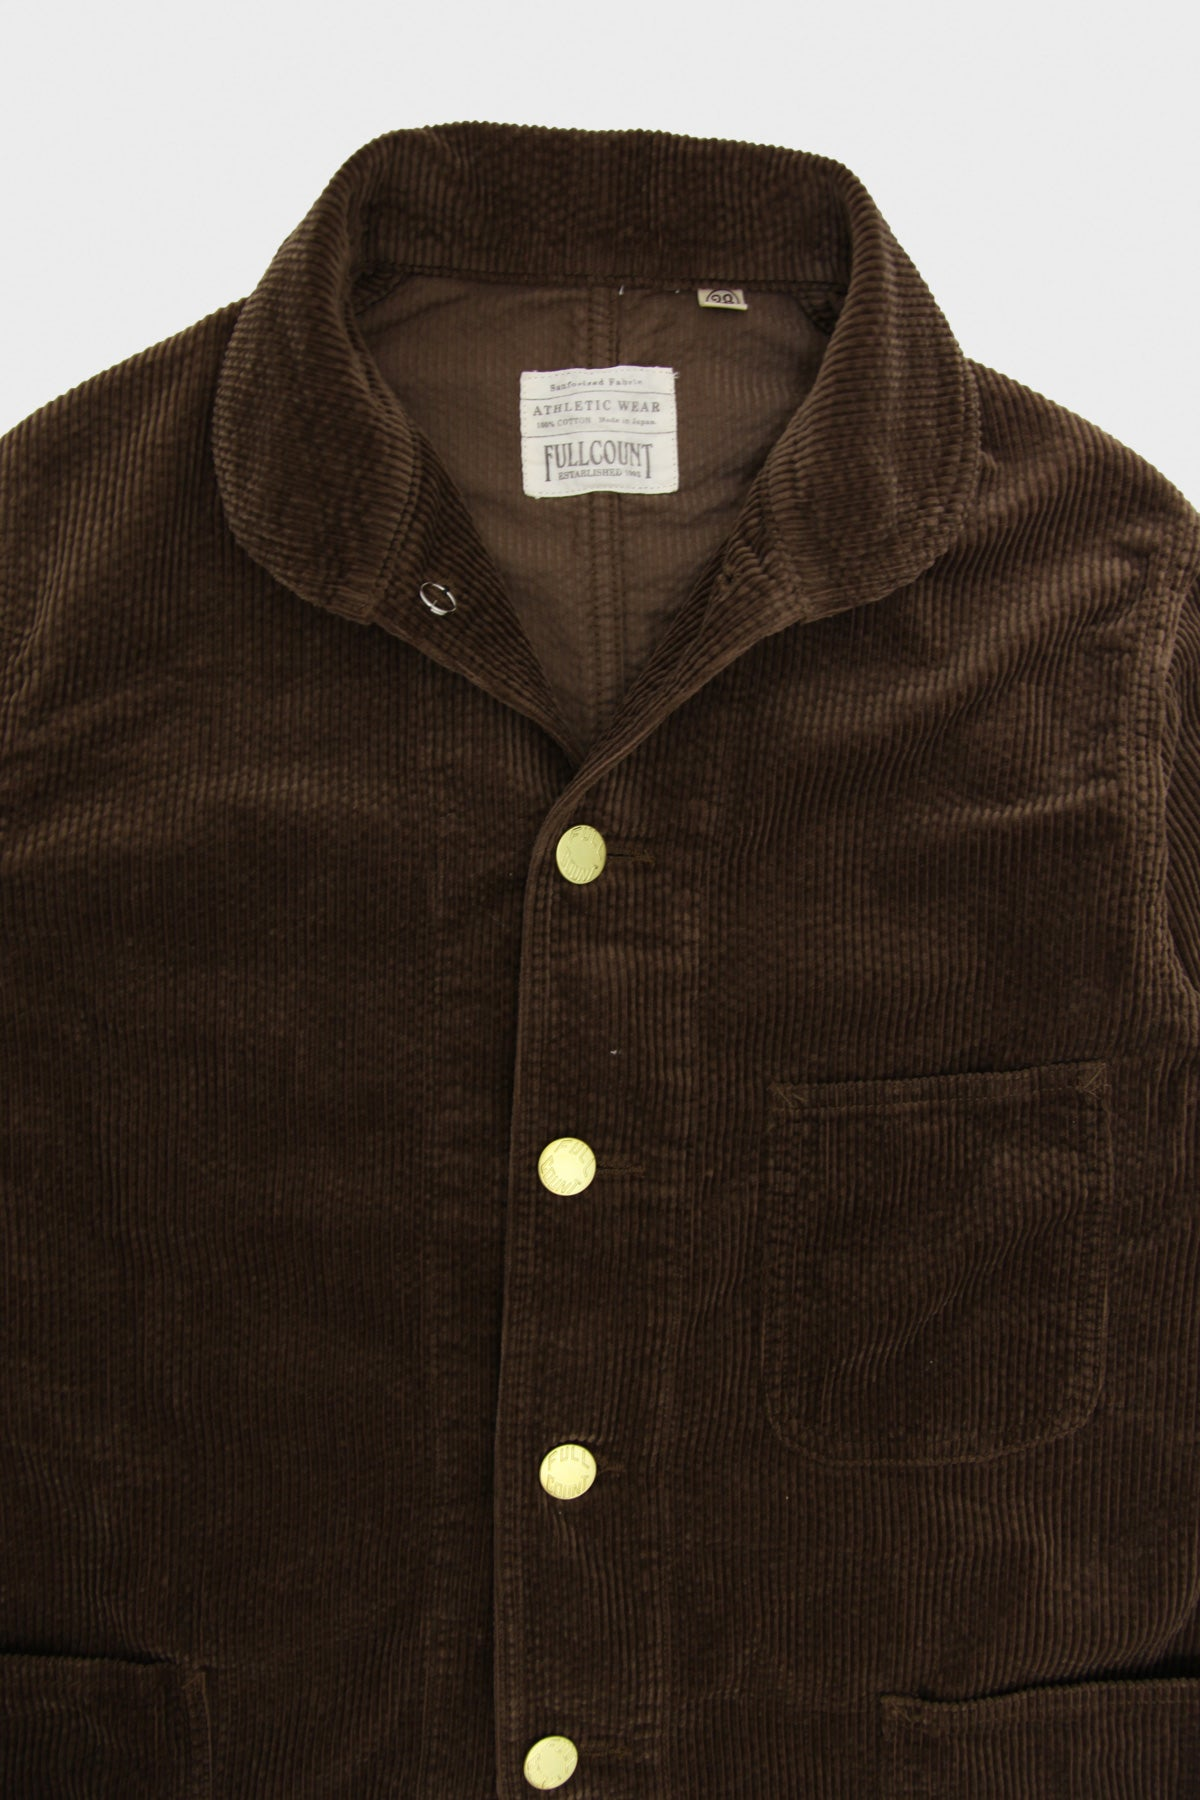 Full Count - Corduroy Farmers Short Coverall - Brown - Canoe Club